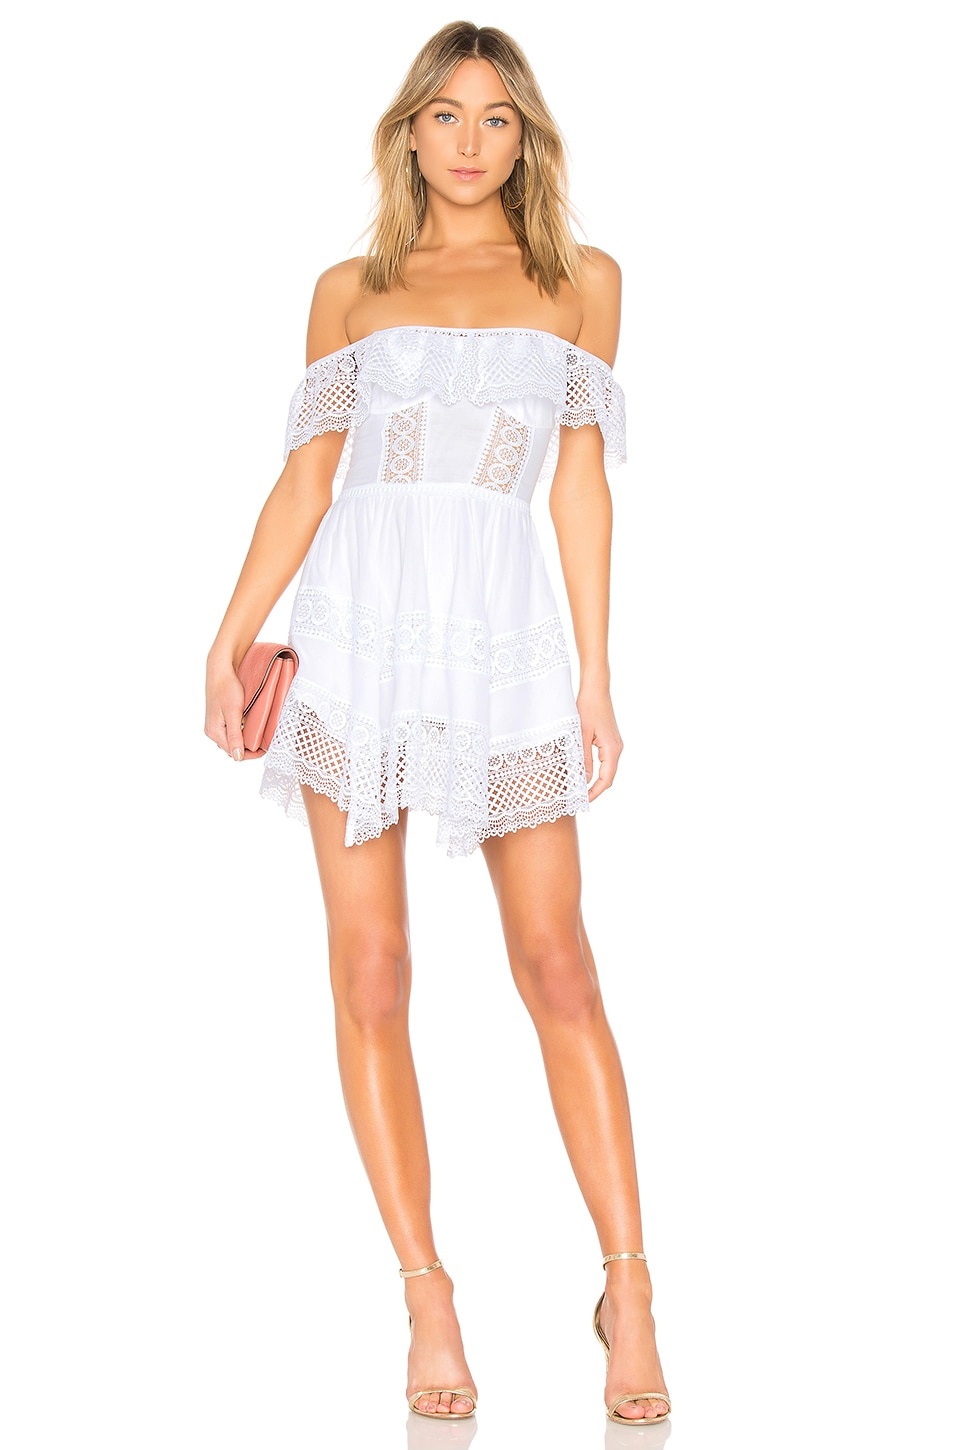 Charo Ruiz Ibiza Charo Ruiz Vaiana Dress in White